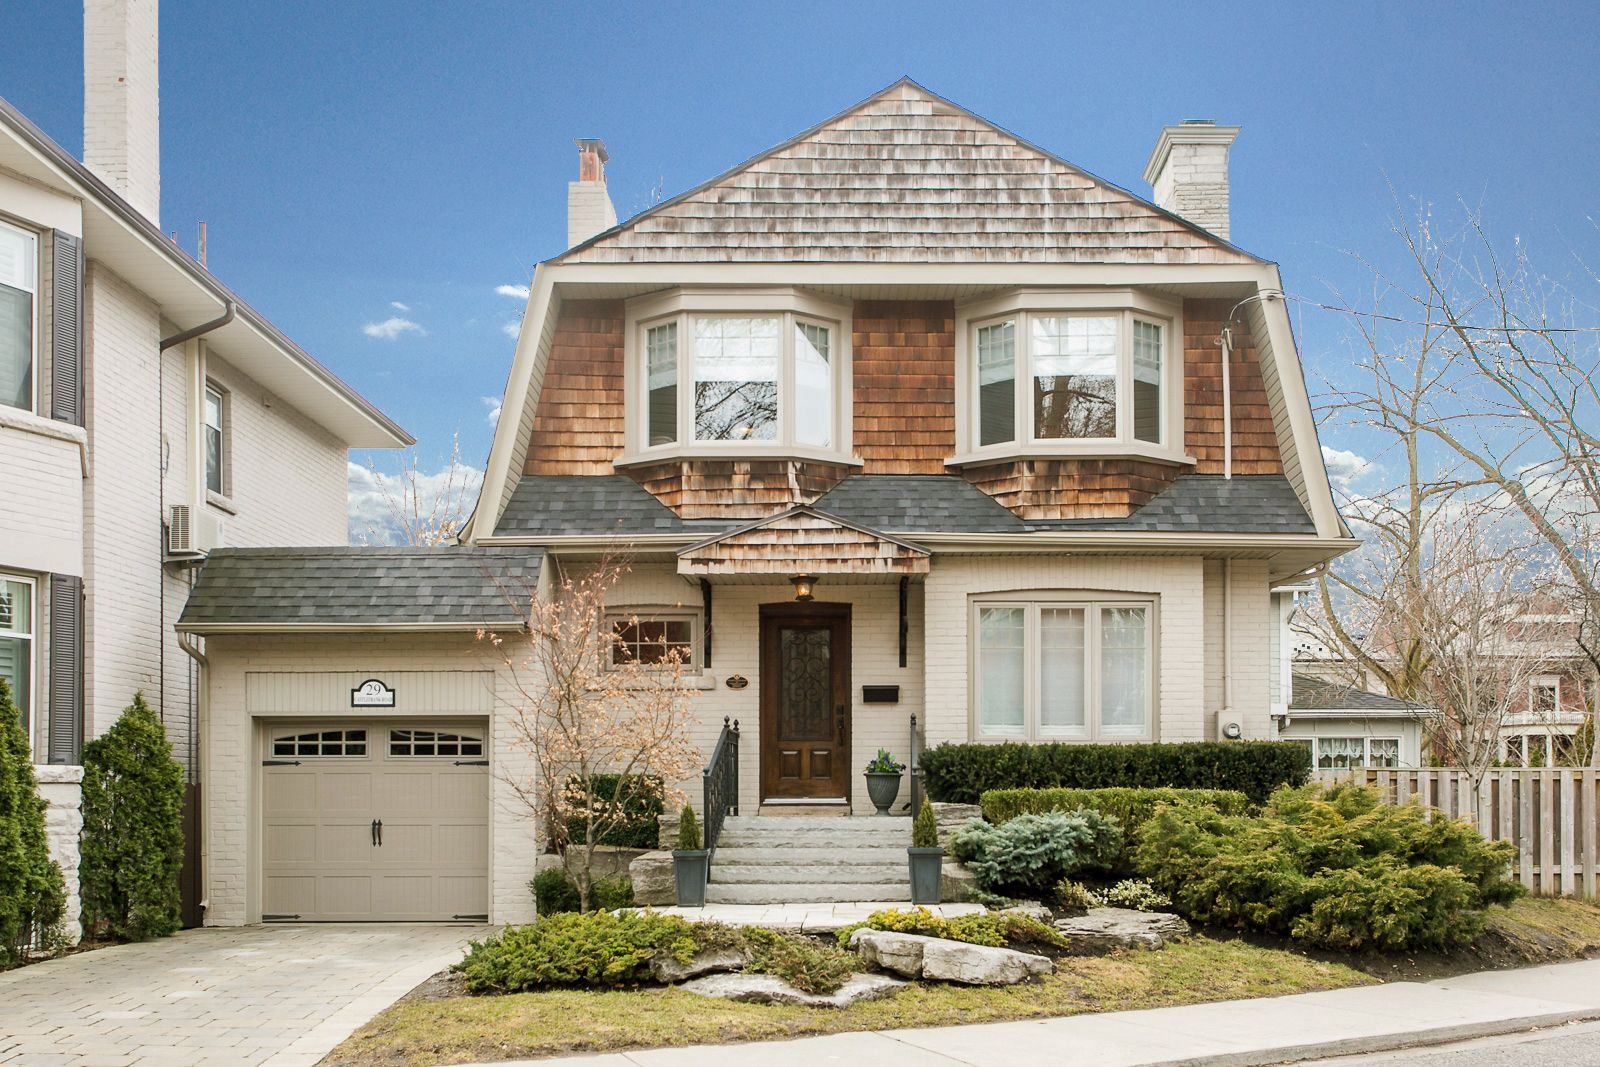 Main Photo: 29 Castle Frank Road in Toronto: Freehold for sale (Toronto C09)  : MLS®# C4151847